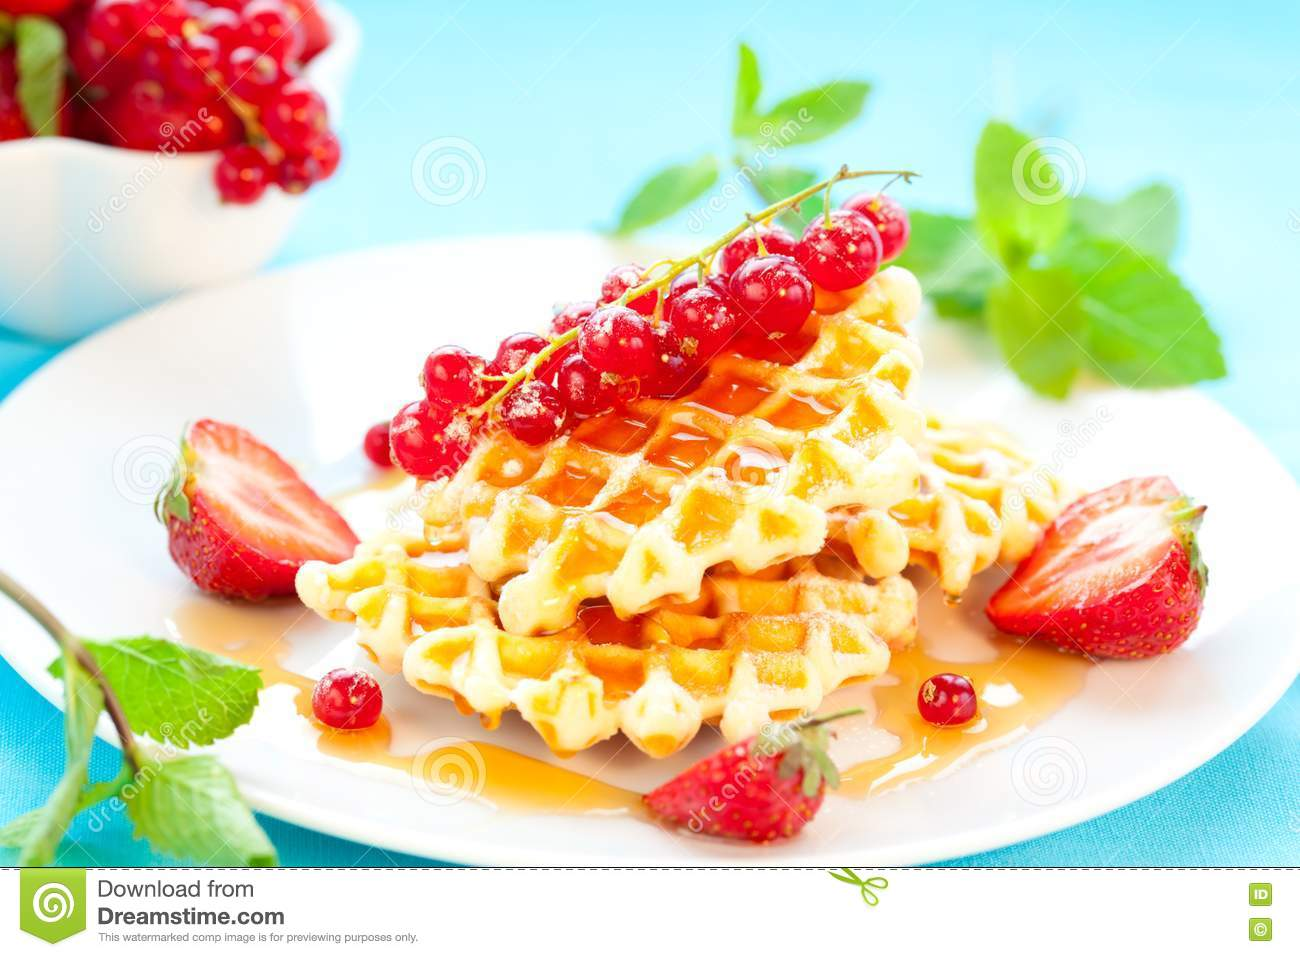 Waffles With Berries Royalty Free Stock Photo - Image: 18848255